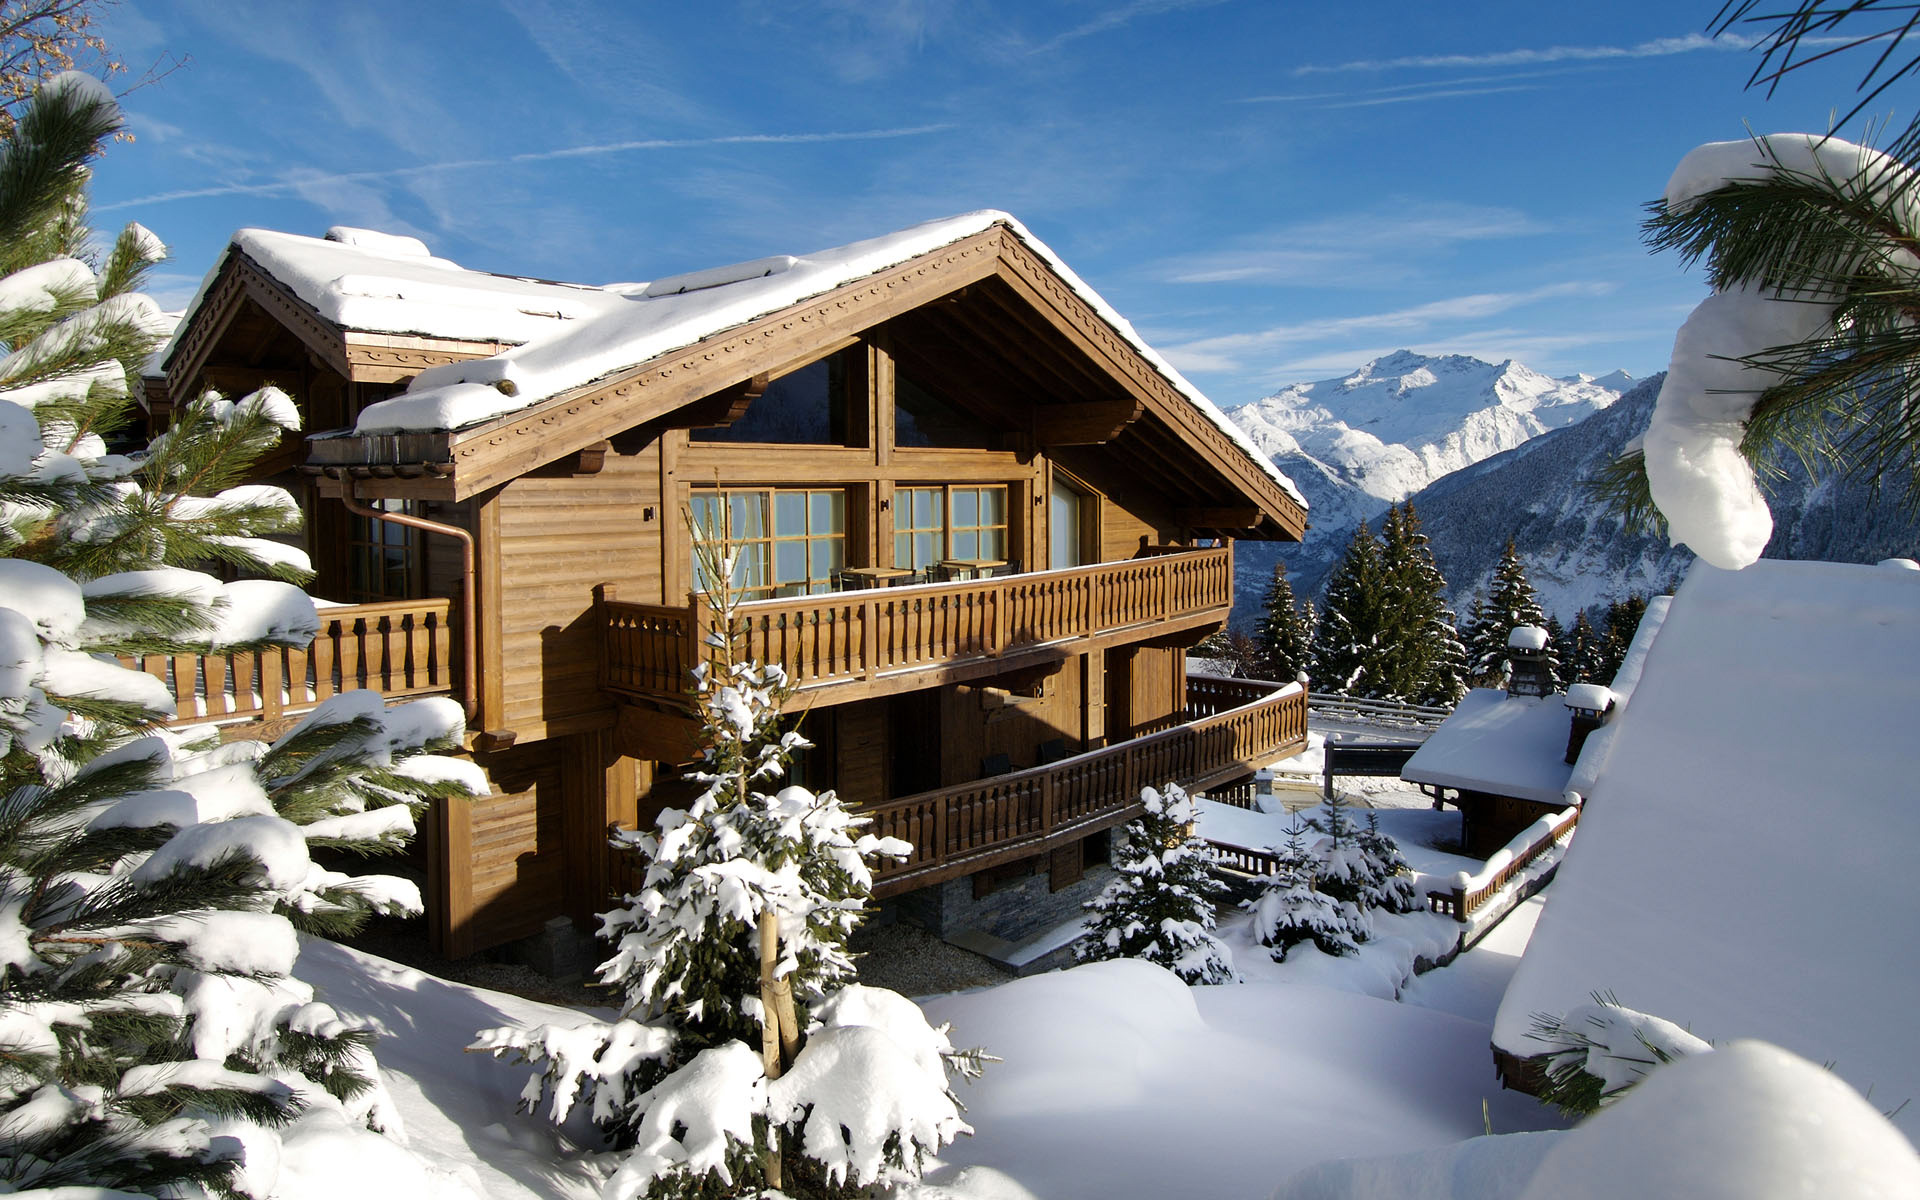 courchevel 1850 chalets for rent french alps casol villas france. Black Bedroom Furniture Sets. Home Design Ideas